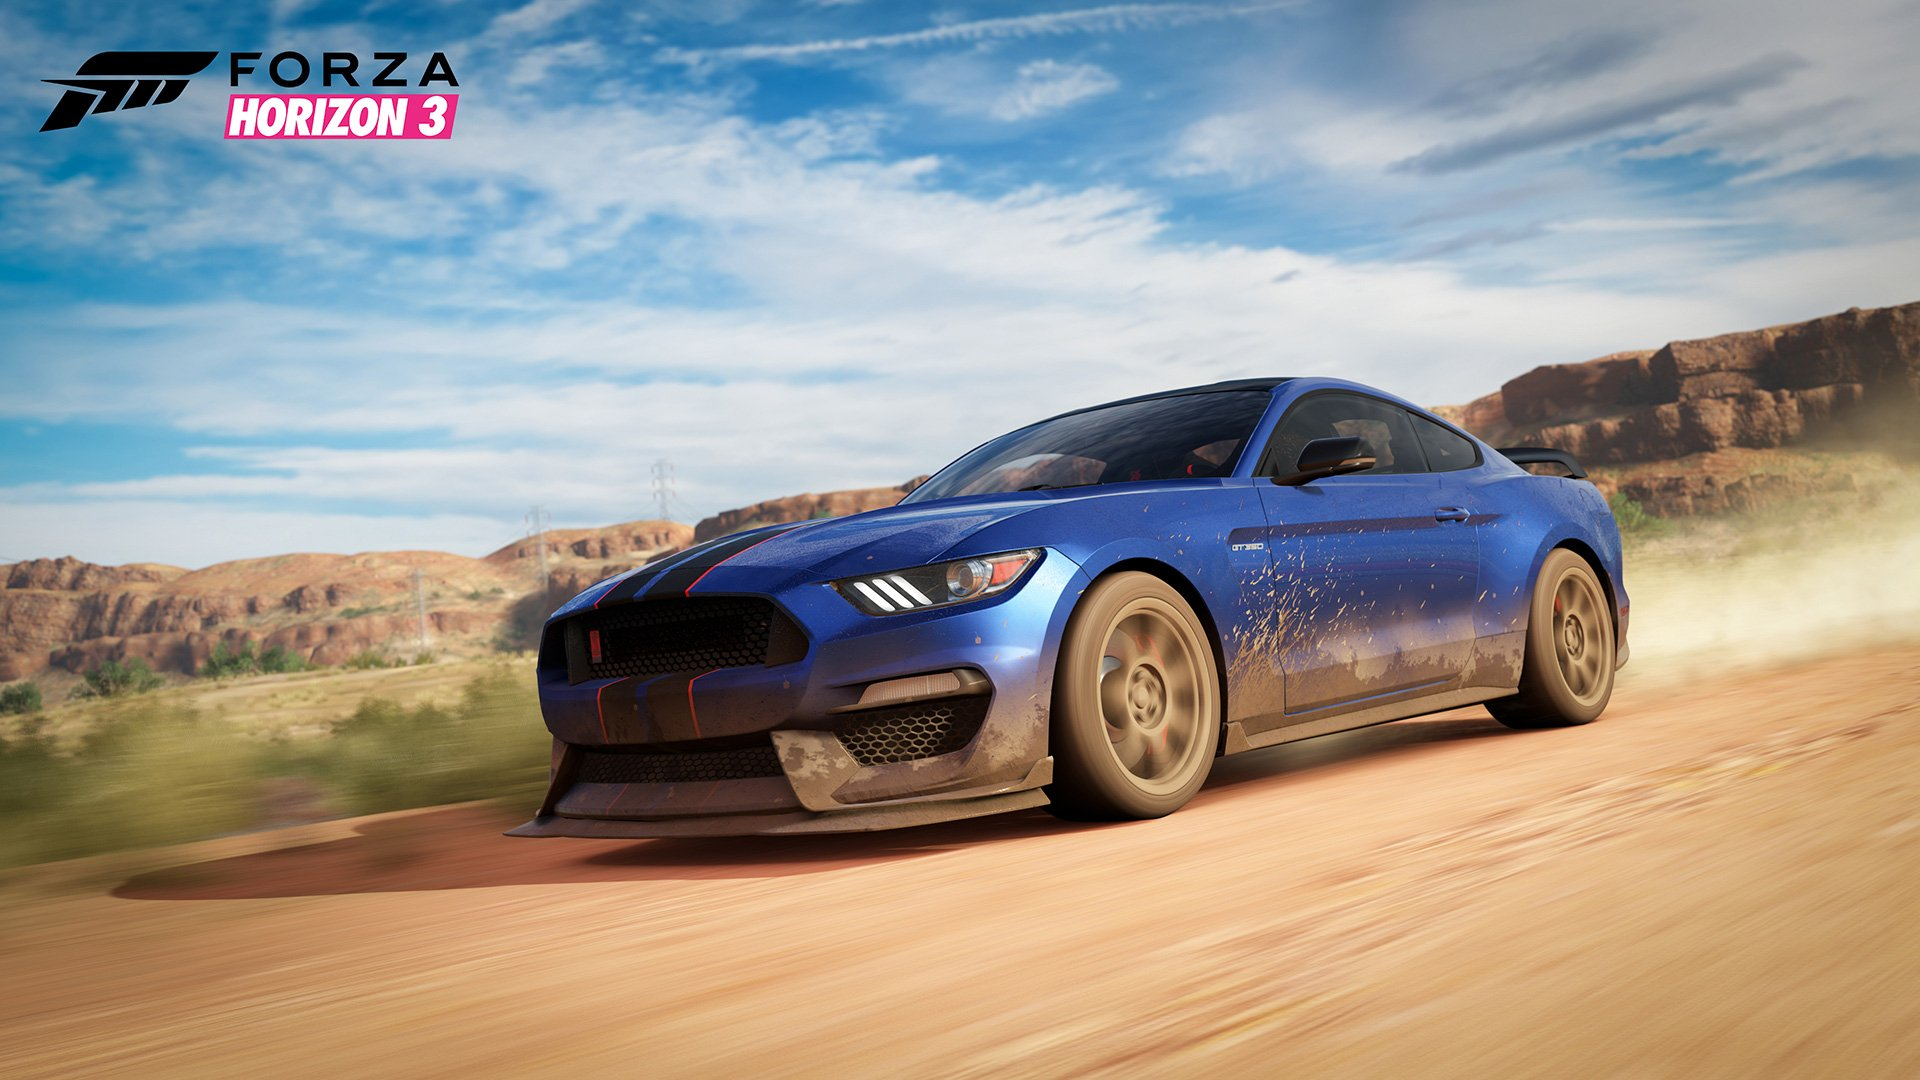 369 Forza Horizon 3 HD Wallpapers Background Images   Wallpaper 1920x1080